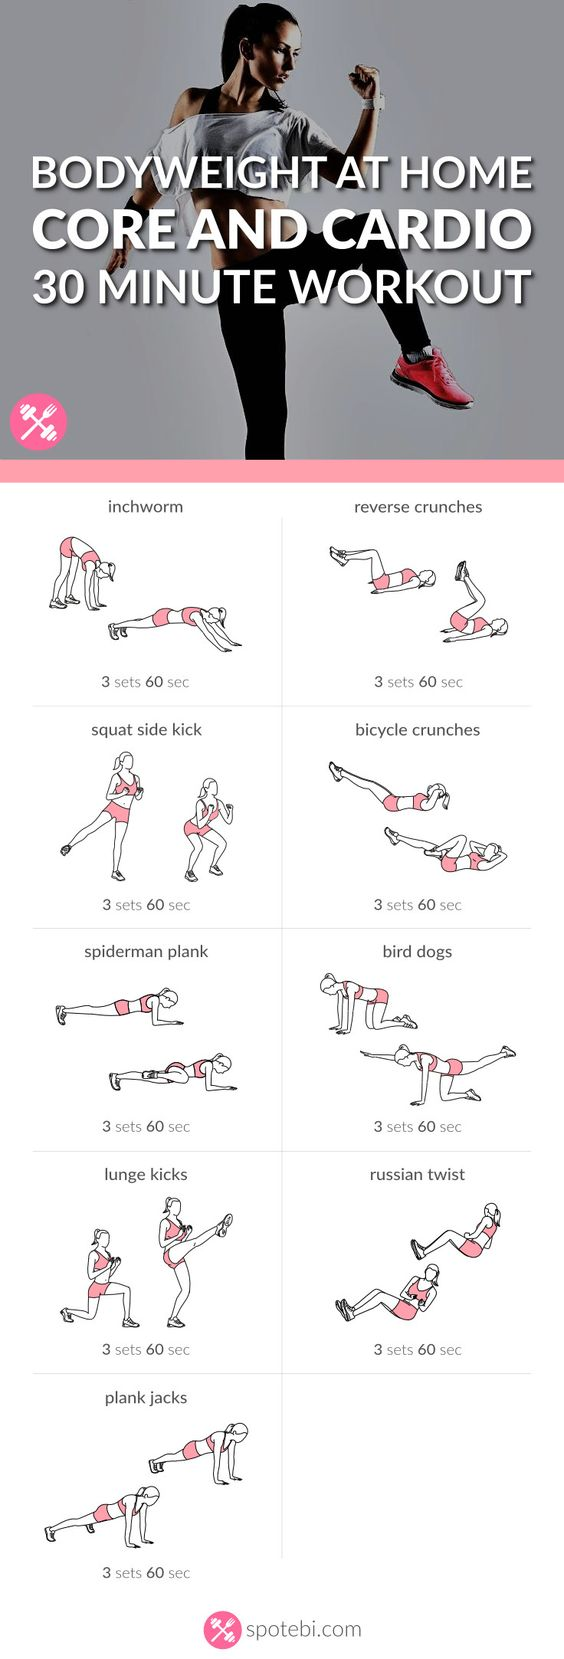 core workouts at home bodyweight at home and cardio workout 30667